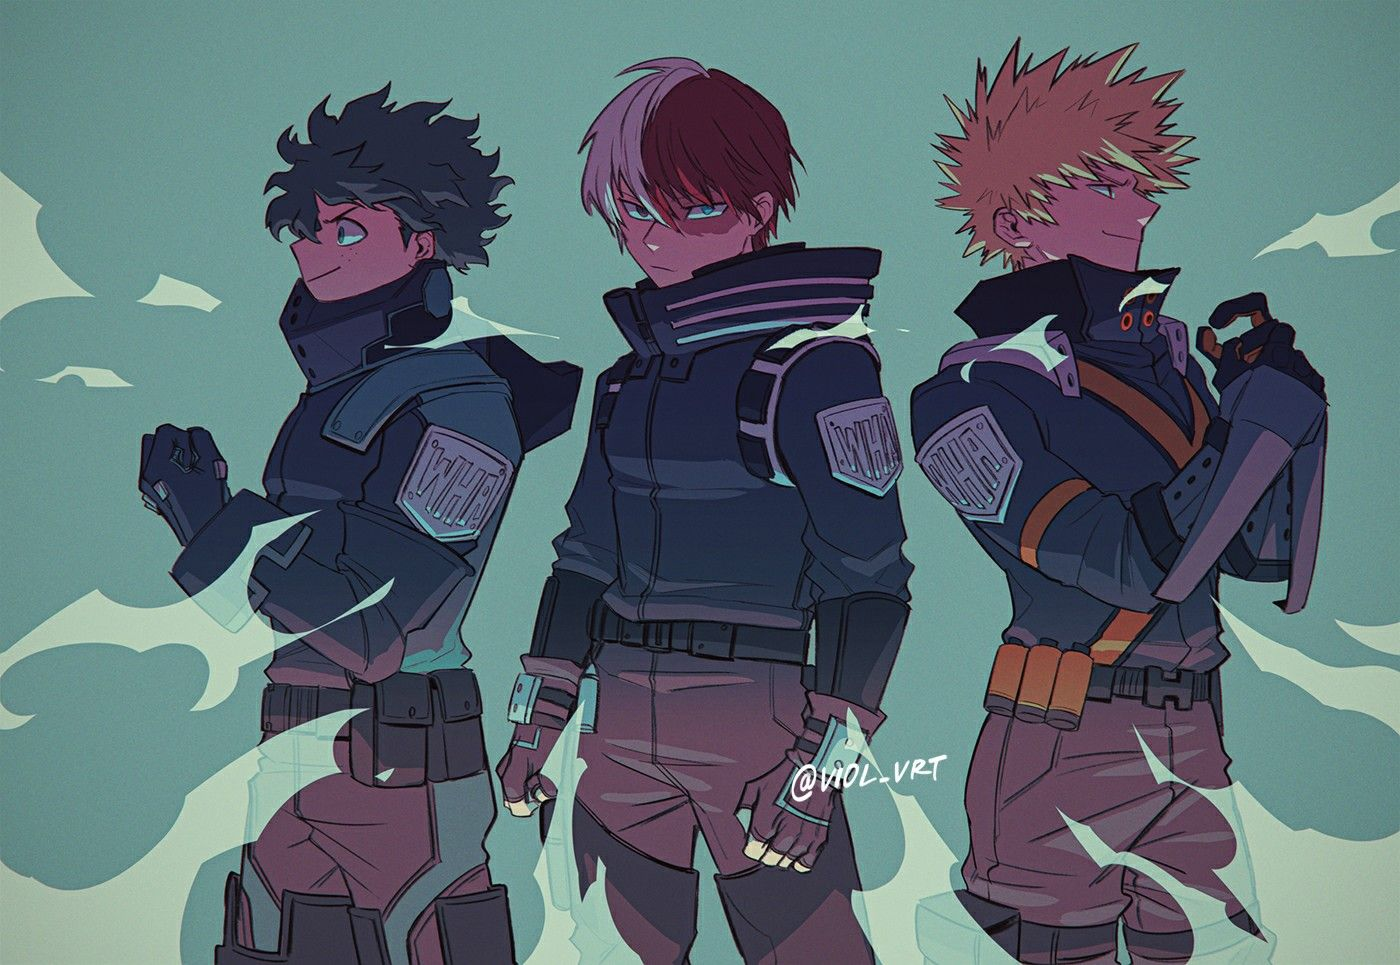 Pin By Evermae On Bnh My Hero Academia Episodes Hero Academia Characters My Hero